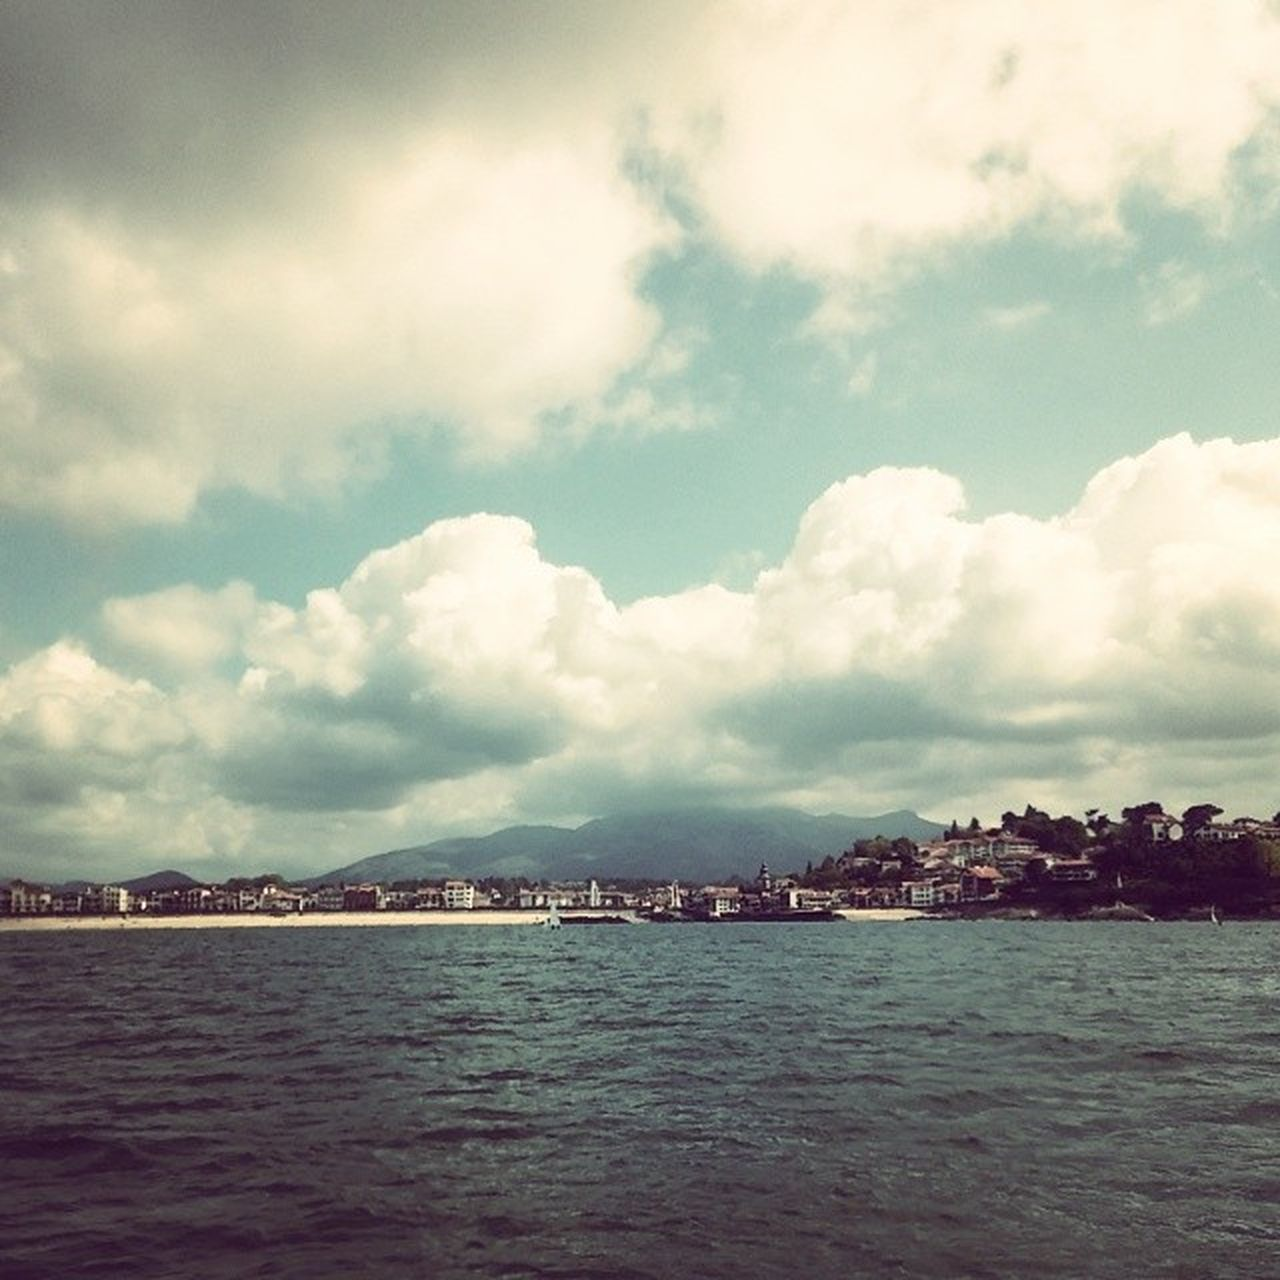 waterfront, water, sky, sea, cloud - sky, cloudy, scenics, tranquil scene, cloud, tranquility, beauty in nature, nature, rippled, built structure, building exterior, river, architecture, outdoors, day, city